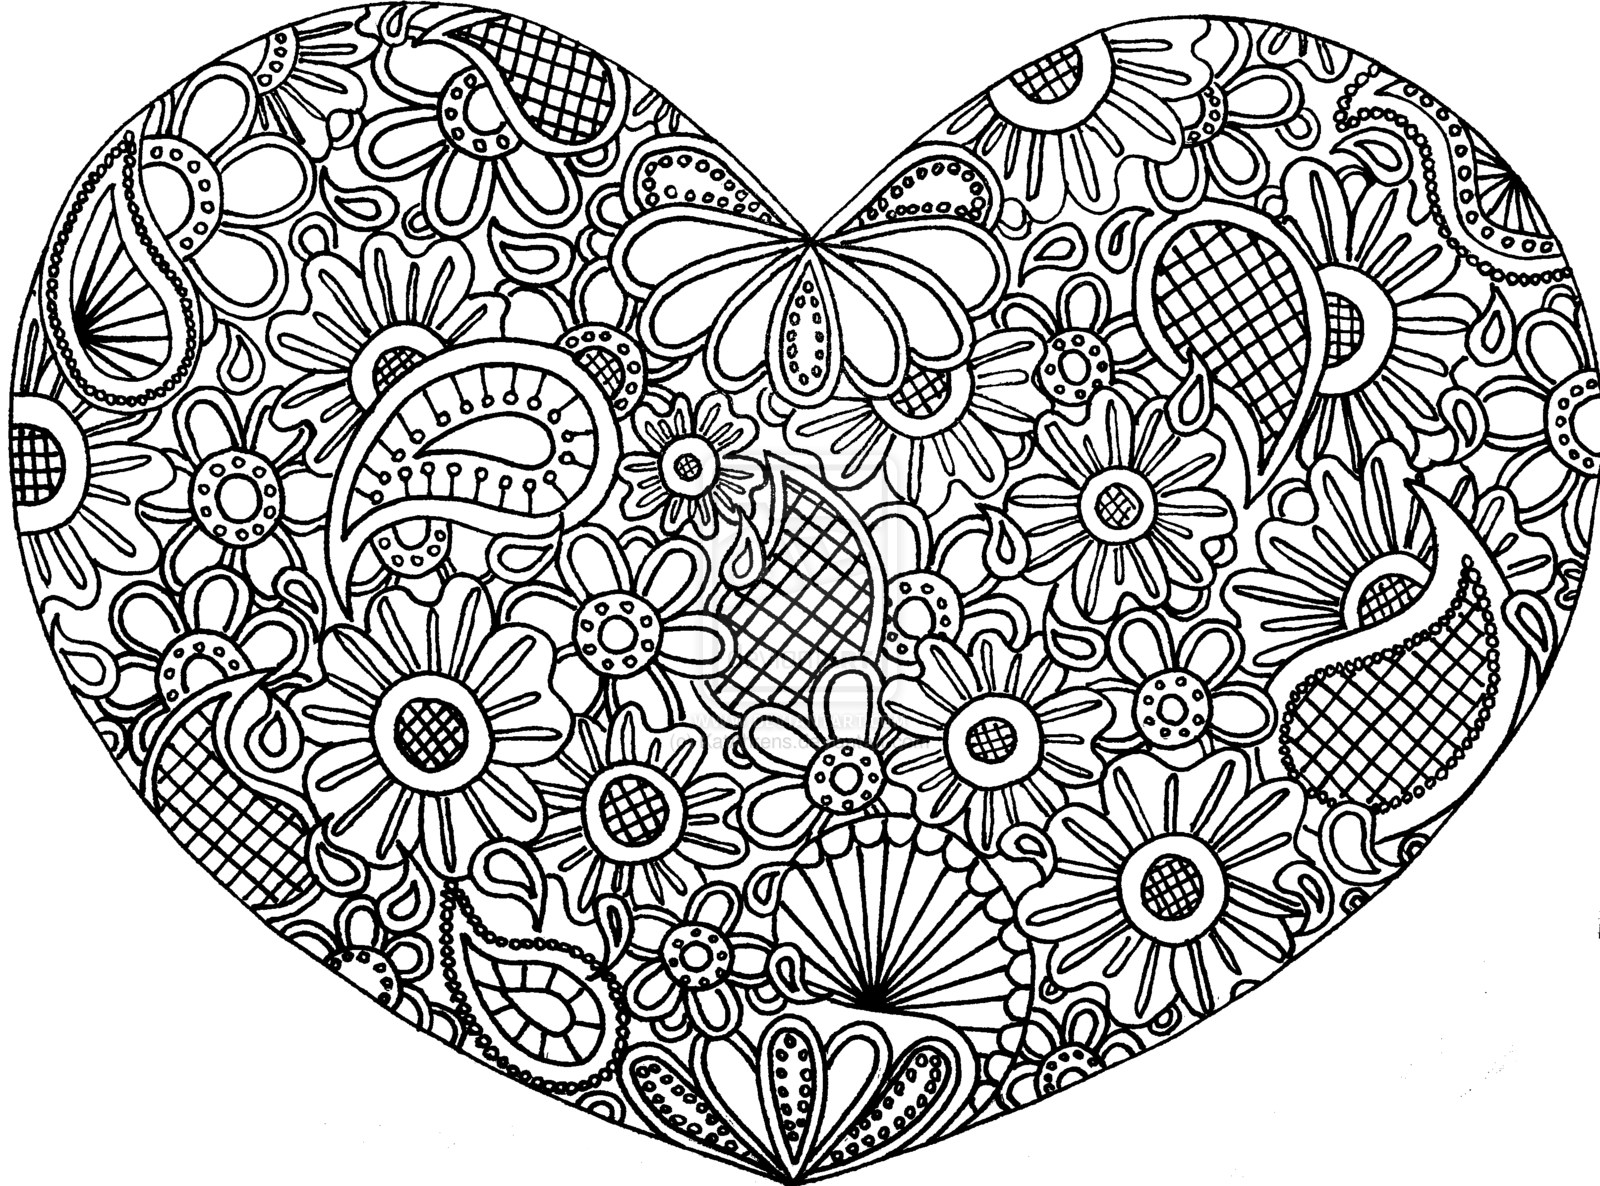 Coloring Pages For Adults Hearts : Free Doodle Art Coloring Pages Coloring Home